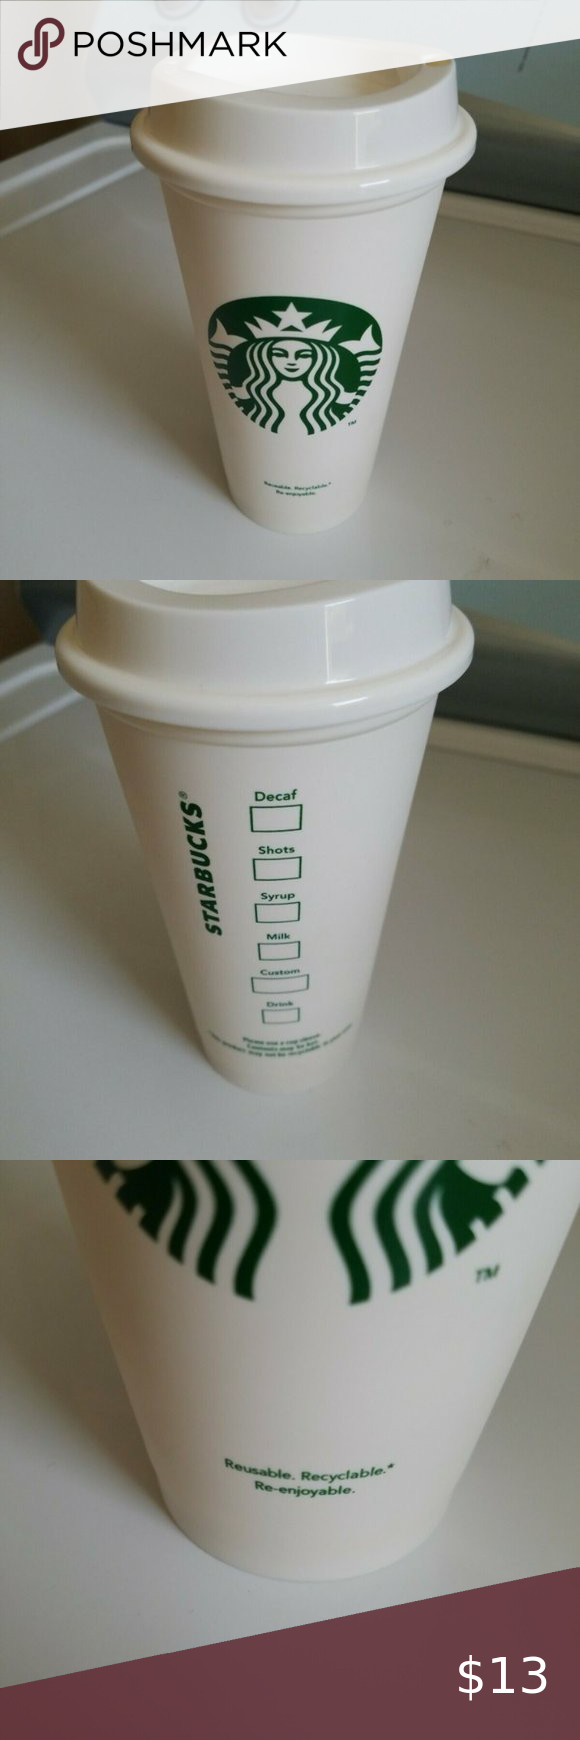 Starbucks Reusable Coffee Cup White Grande in 2020